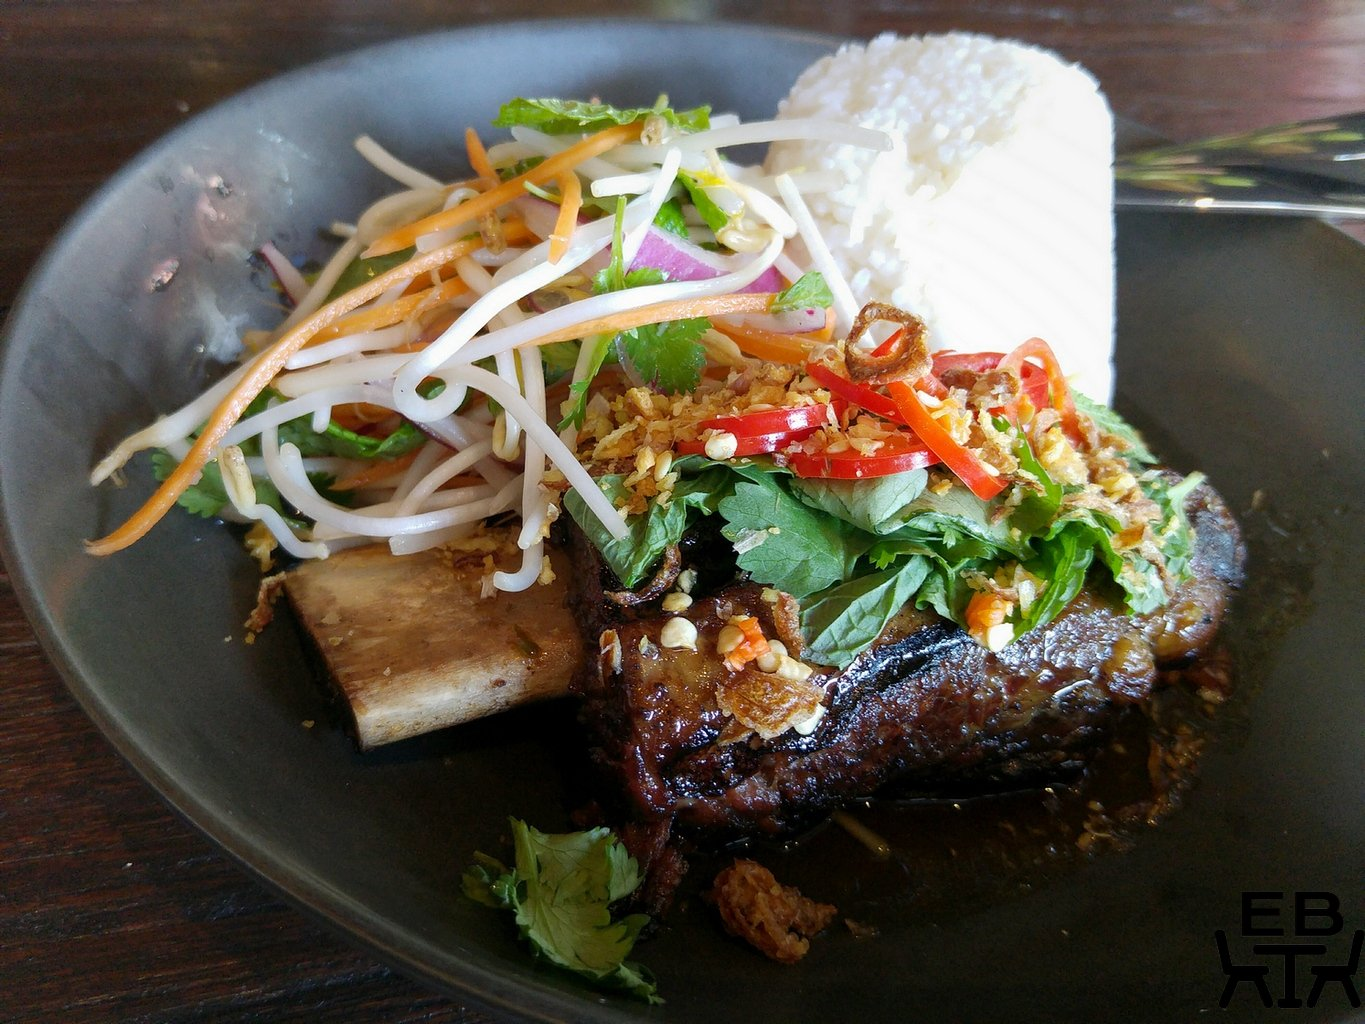 Rogue spice beef ribs